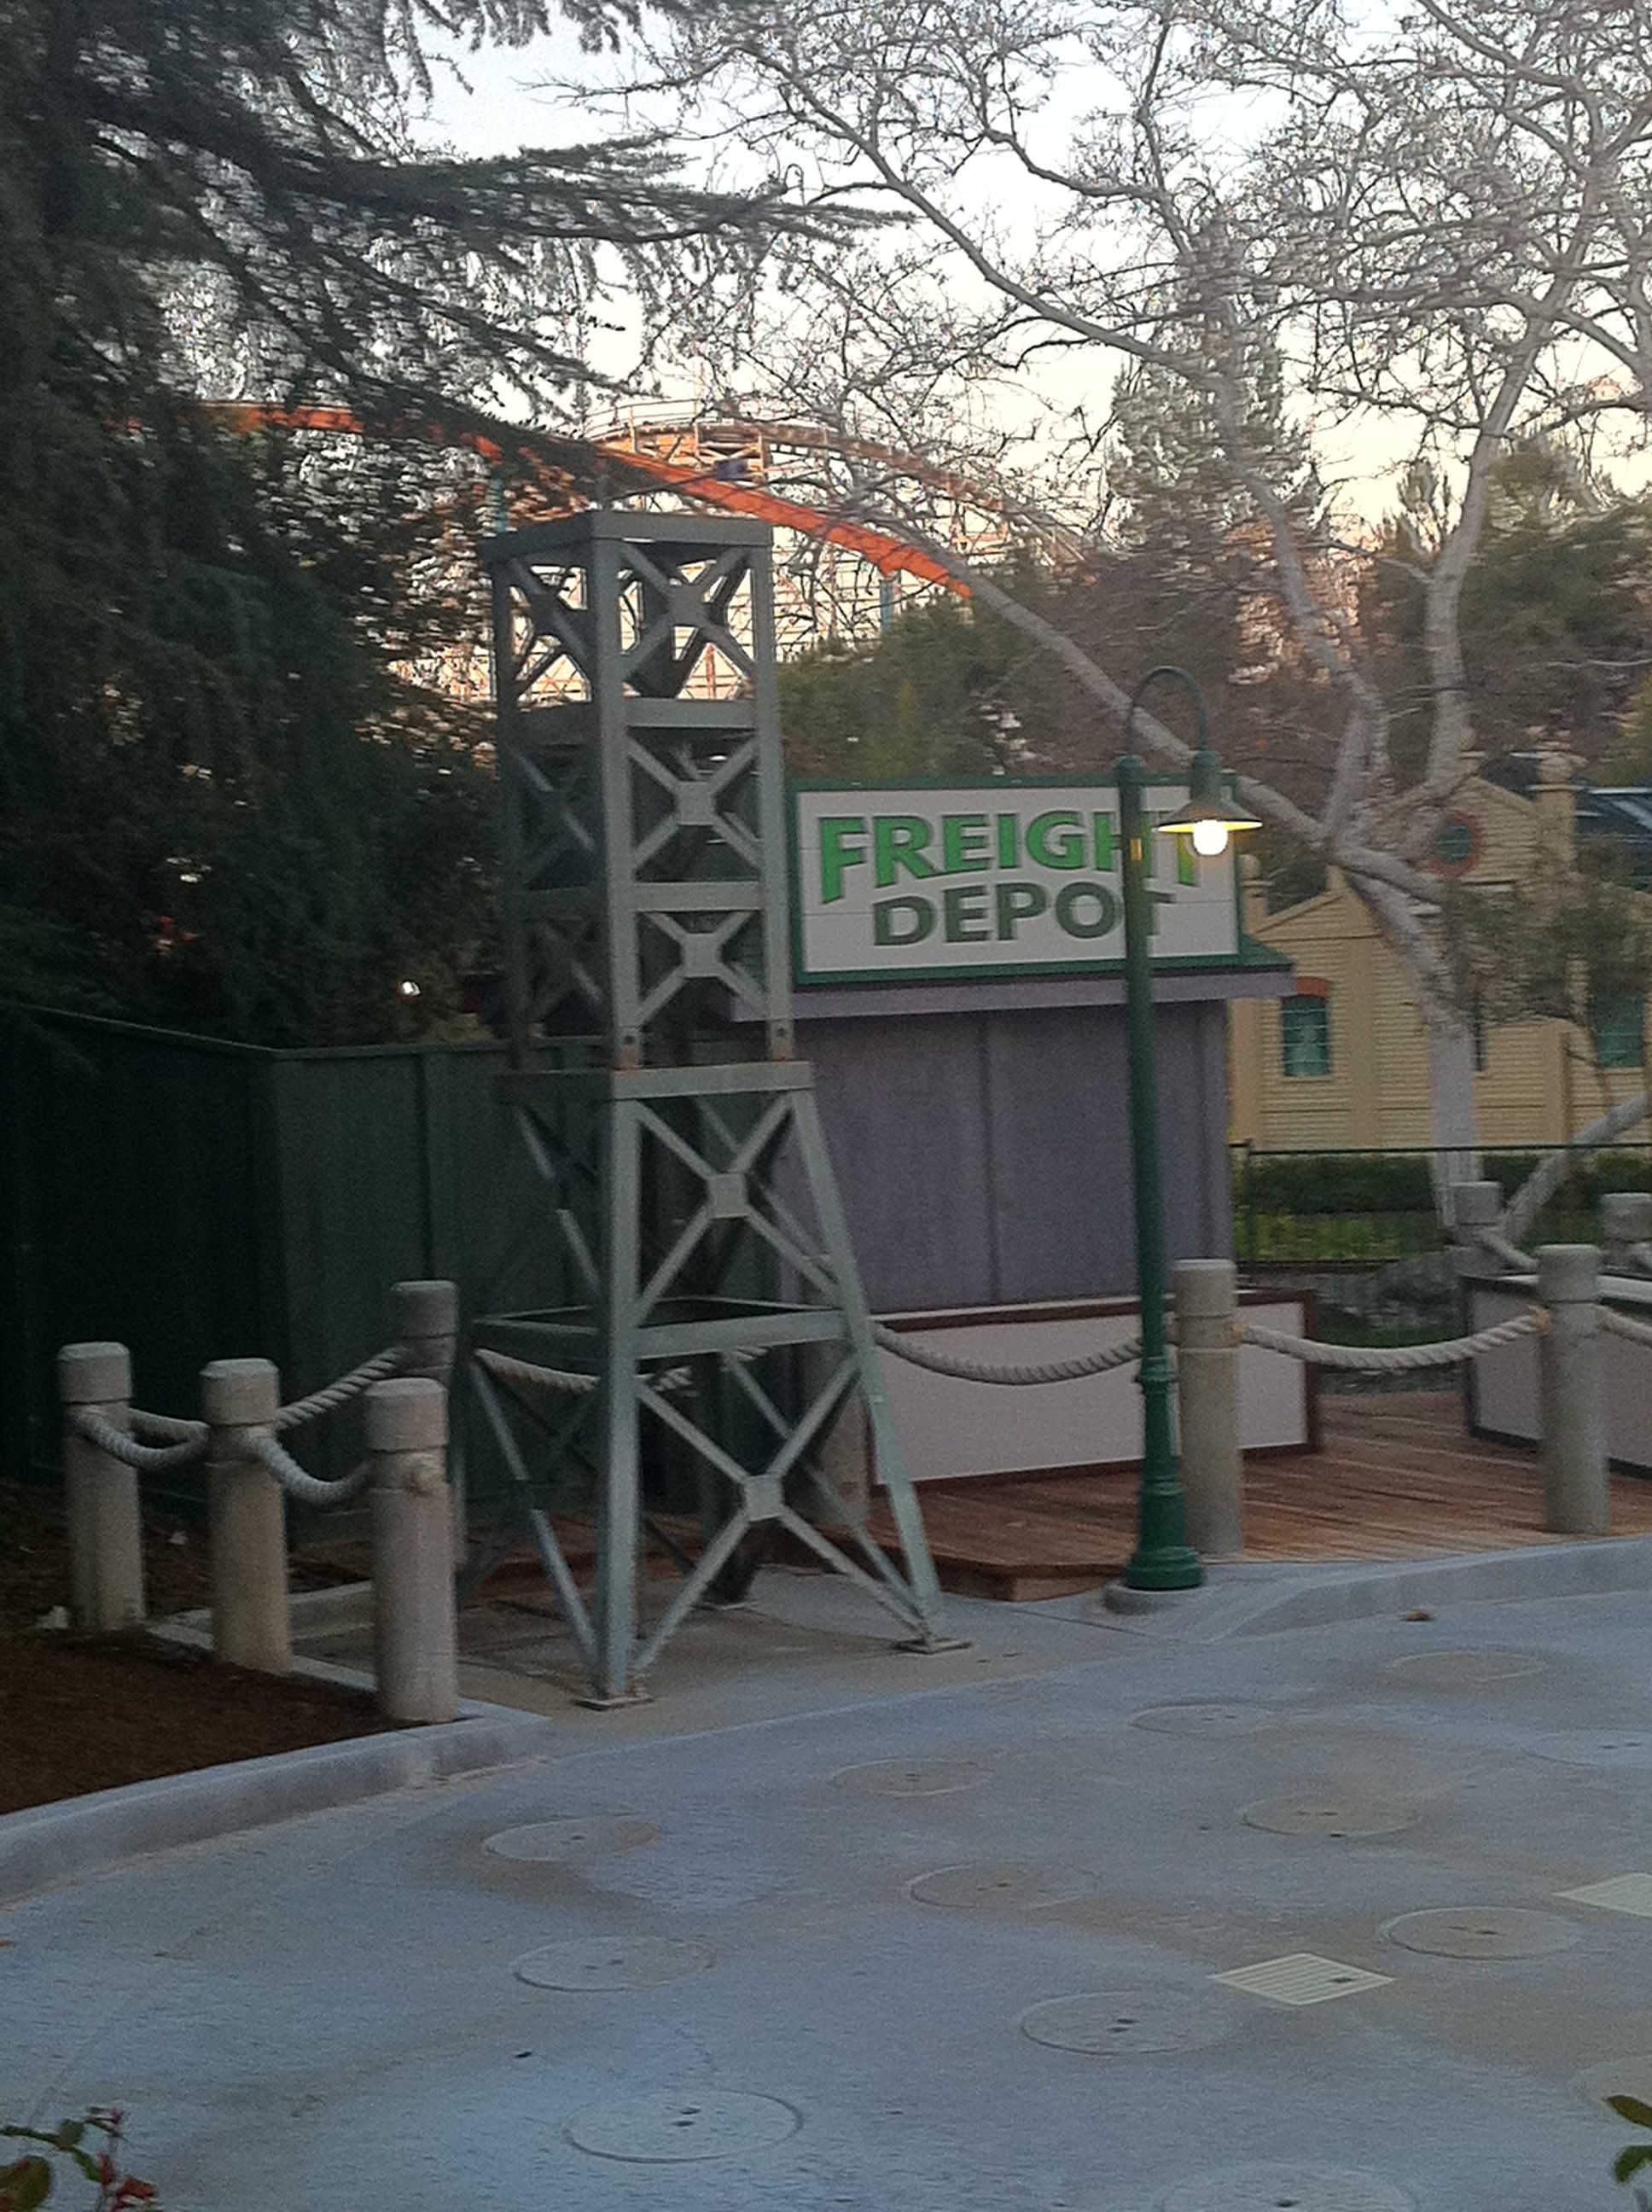 I Hope This Crane Is Just Hiding Other >> Theme Park Review • The Six Flags Magic Mountain (SFMM) Discussion Thread - Page 1723